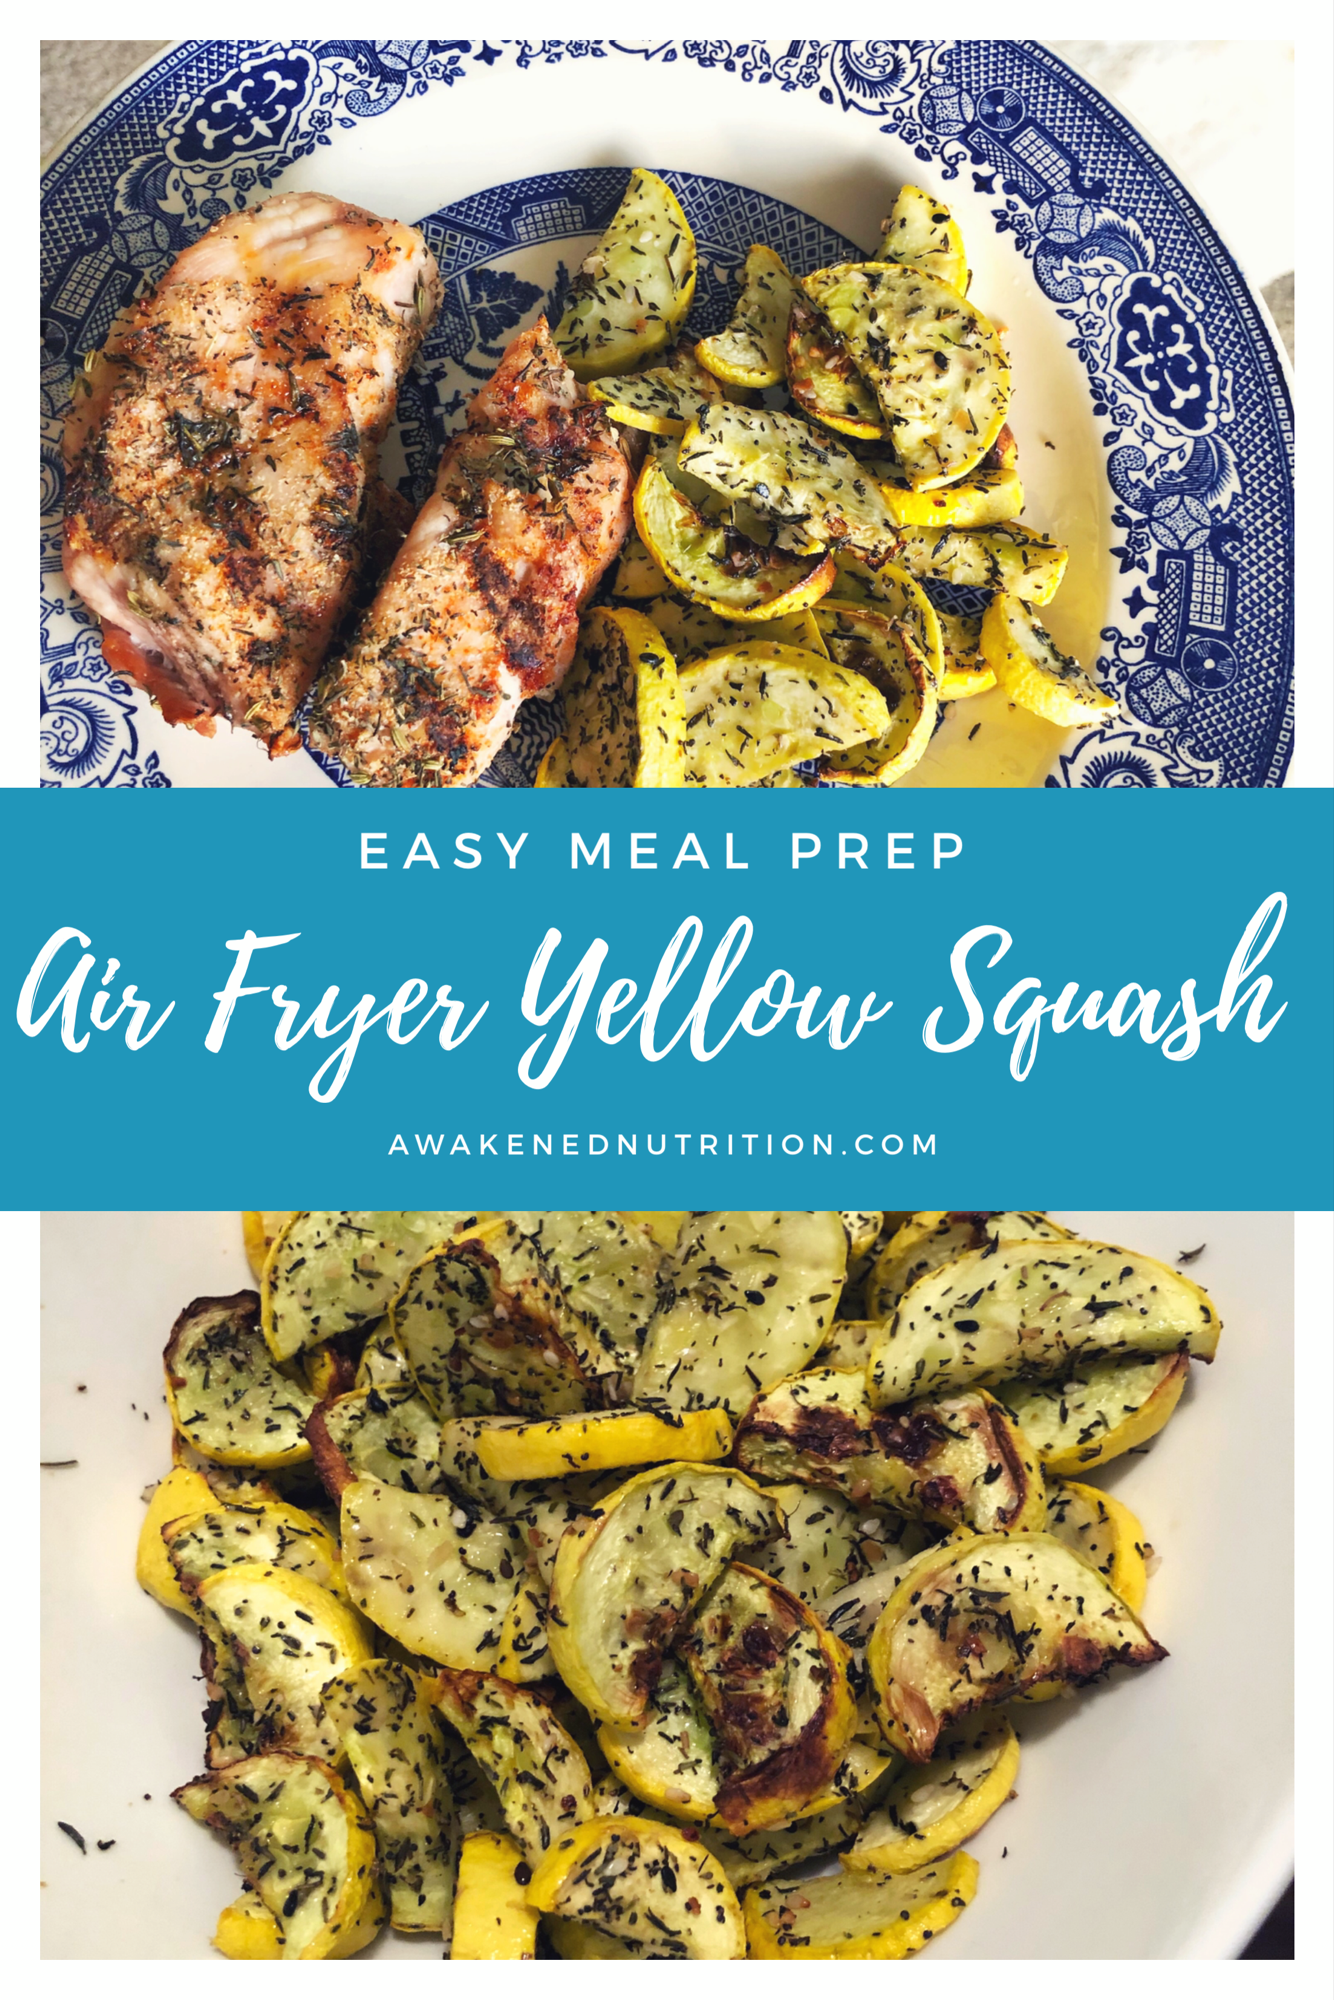 Easy Meal Prep: Air Fryer Roasted Yellow Squash. This recipe is so easy to make for a healthy meal prep idea or as a healthy side dish for dinner. #airfryerrecipe #airfryersidedish